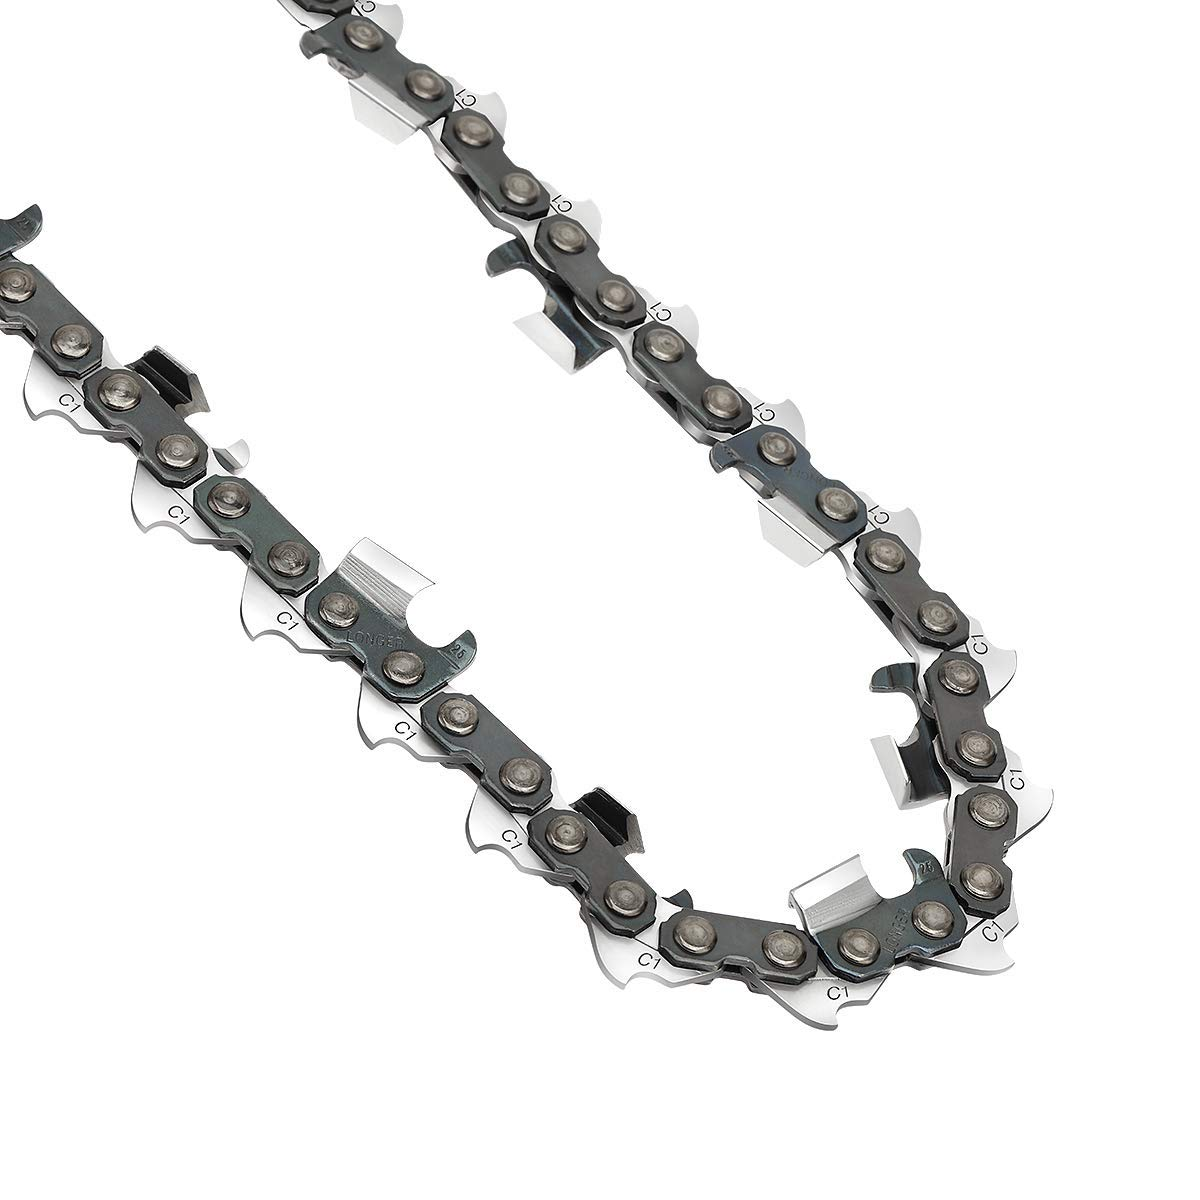 24 Inch Full Chisel 84 Drive Links Chainsaw Chain 3 8